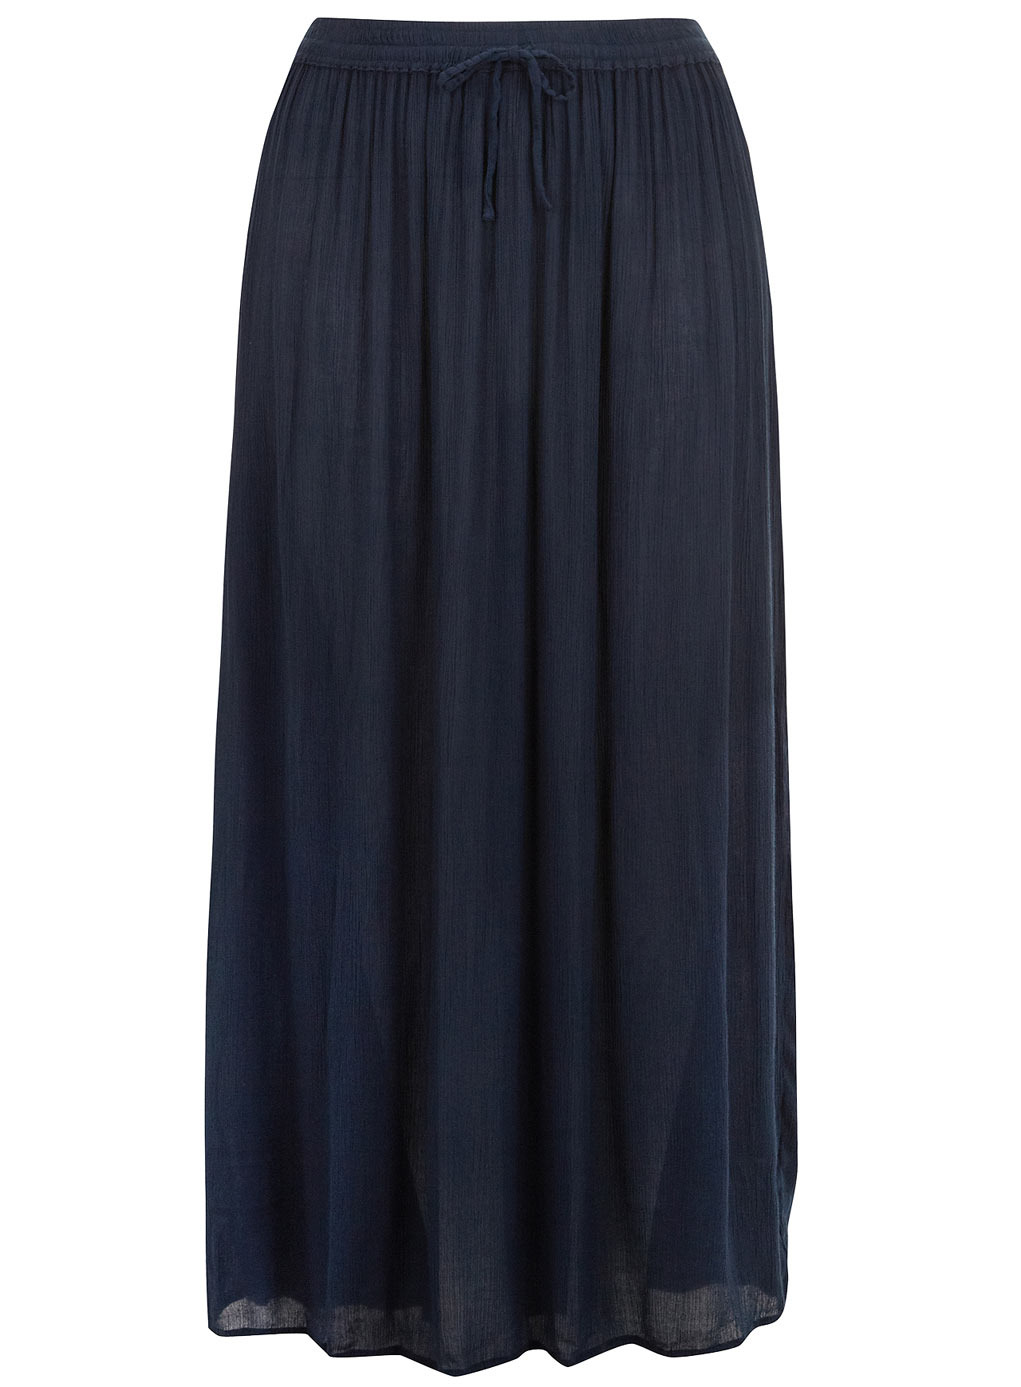 Navy Crinkle Skirt - pattern: plain; length: ankle length; fit: loose/voluminous; waist: high rise; waist detail: belted waist/tie at waist/drawstring; predominant colour: navy; occasions: casual; style: maxi skirt; fibres: viscose/rayon - 100%; hip detail: ruching/gathering at hip; texture group: cotton feel fabrics; pattern type: fabric; season: s/s 2014